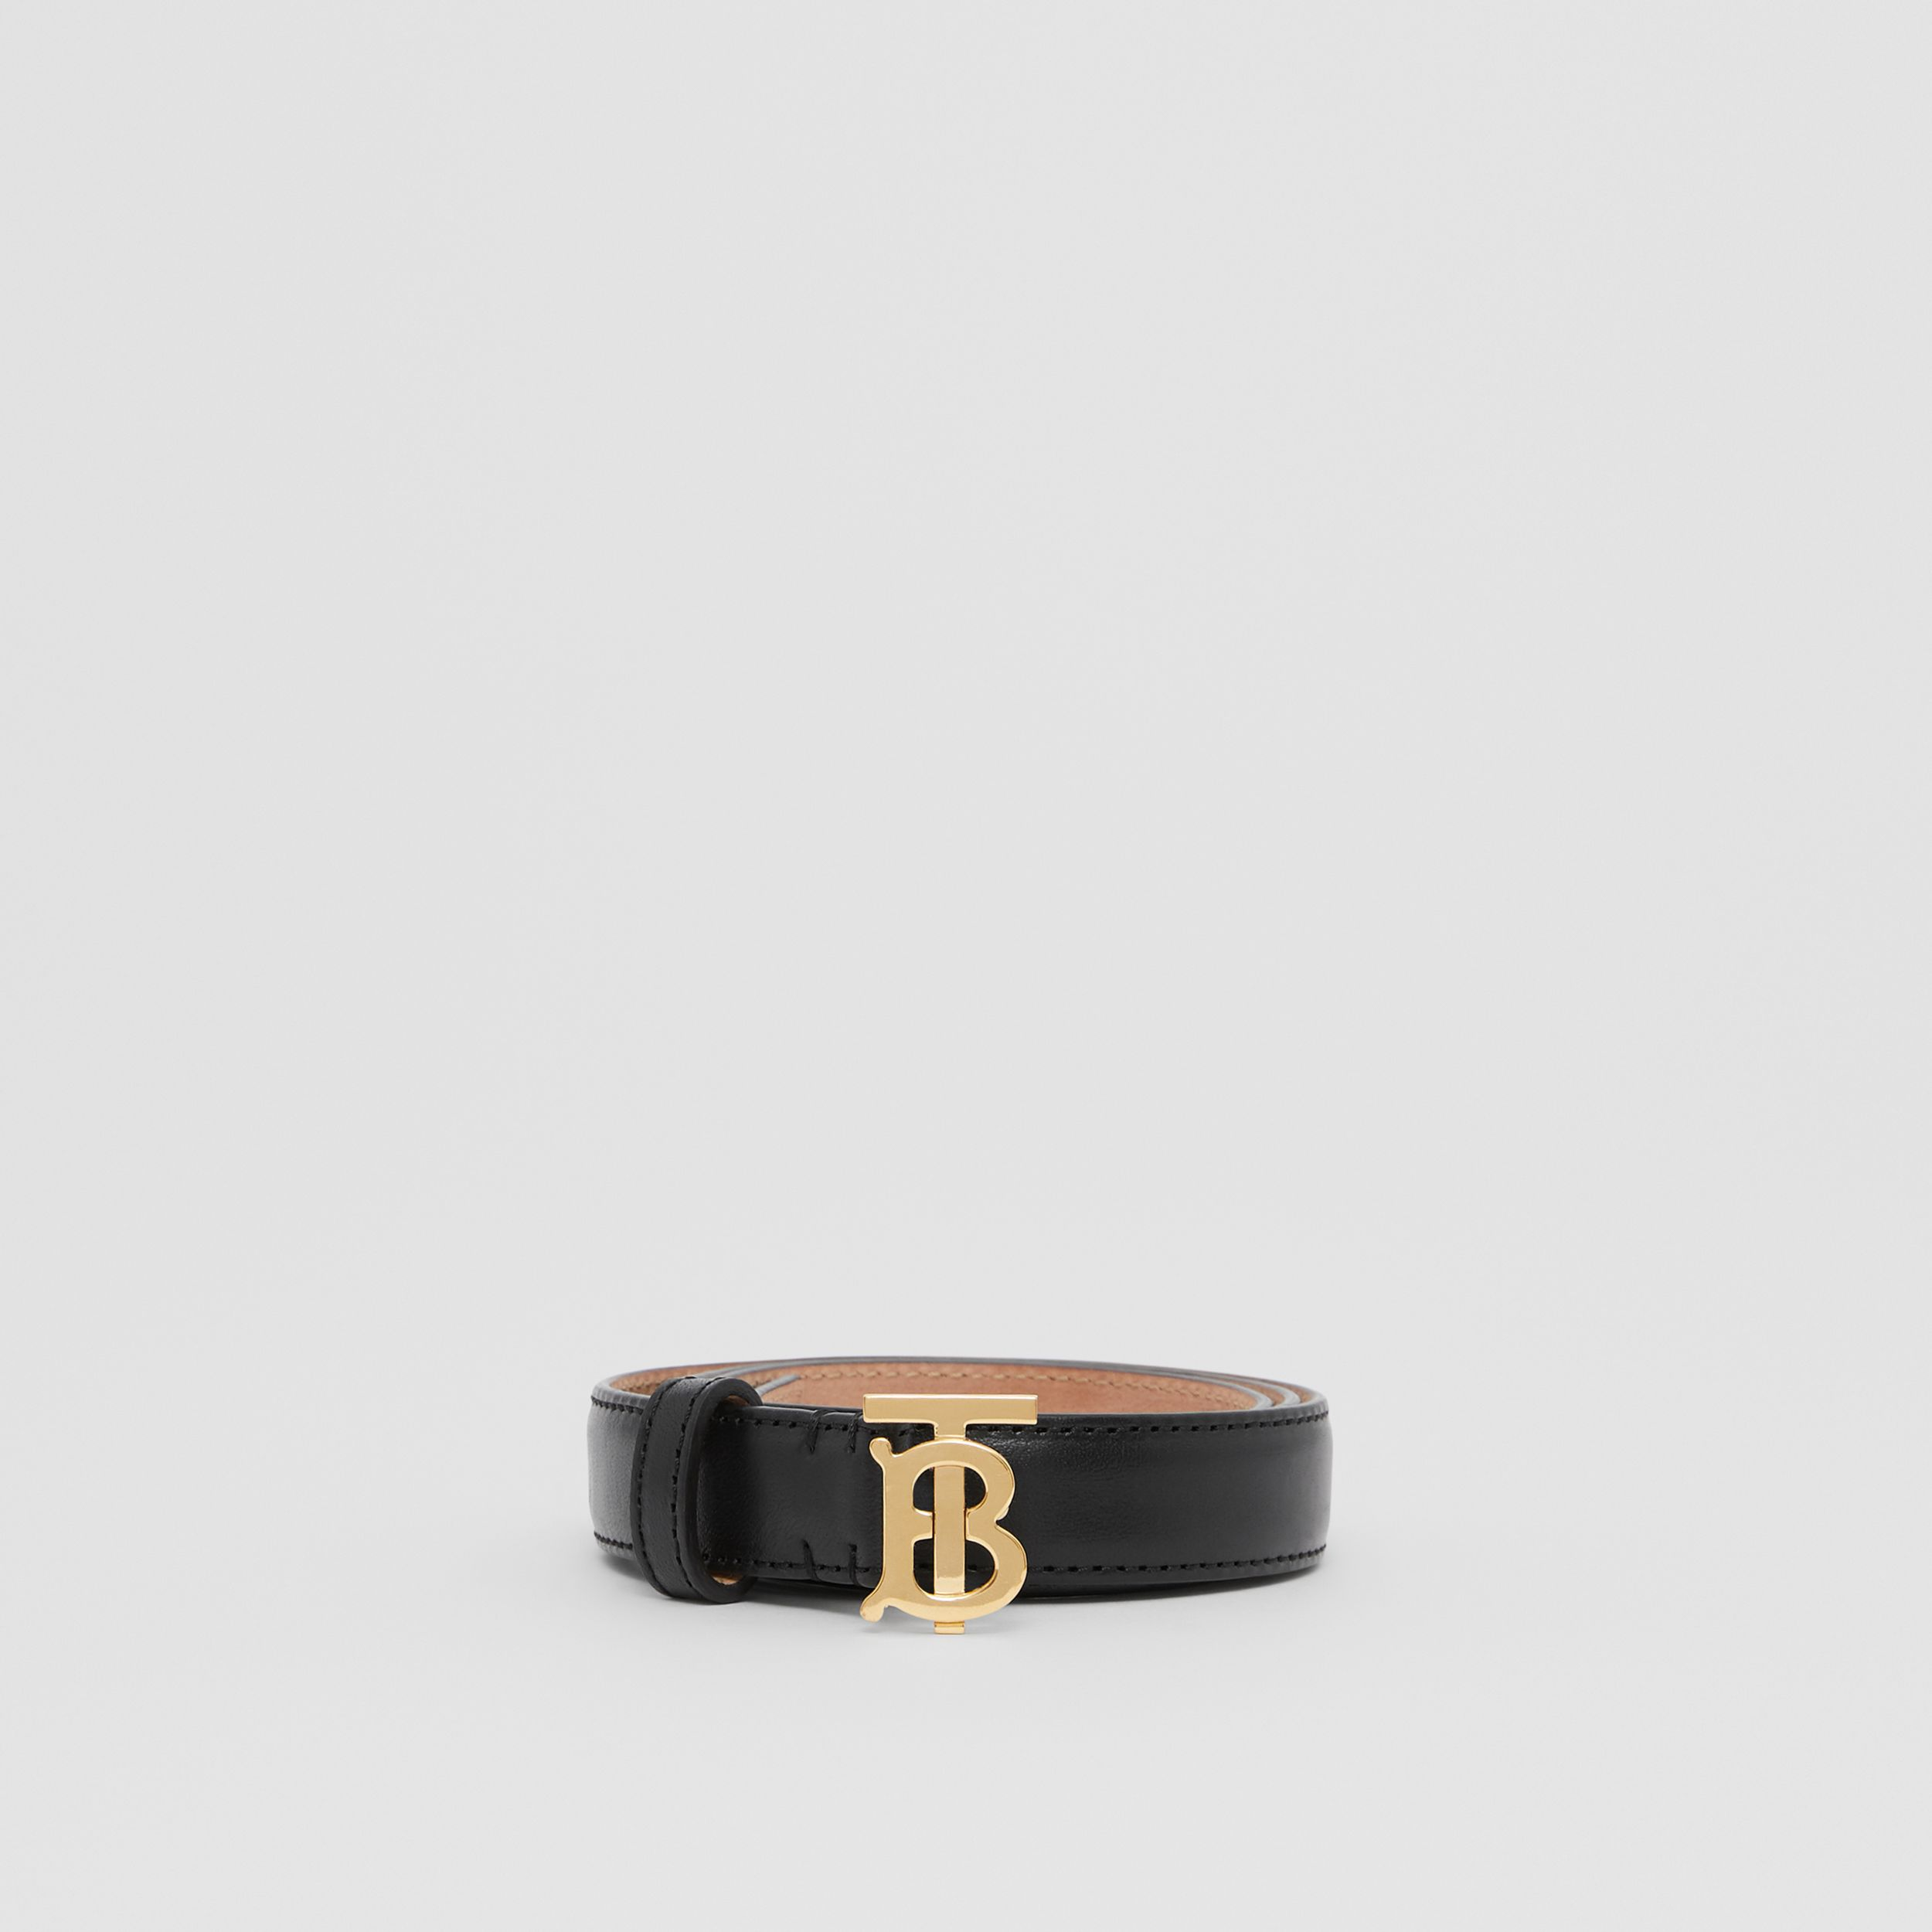 Monogram Motif Leather Belt in Black/light Gold - Women | Burberry United States - 3